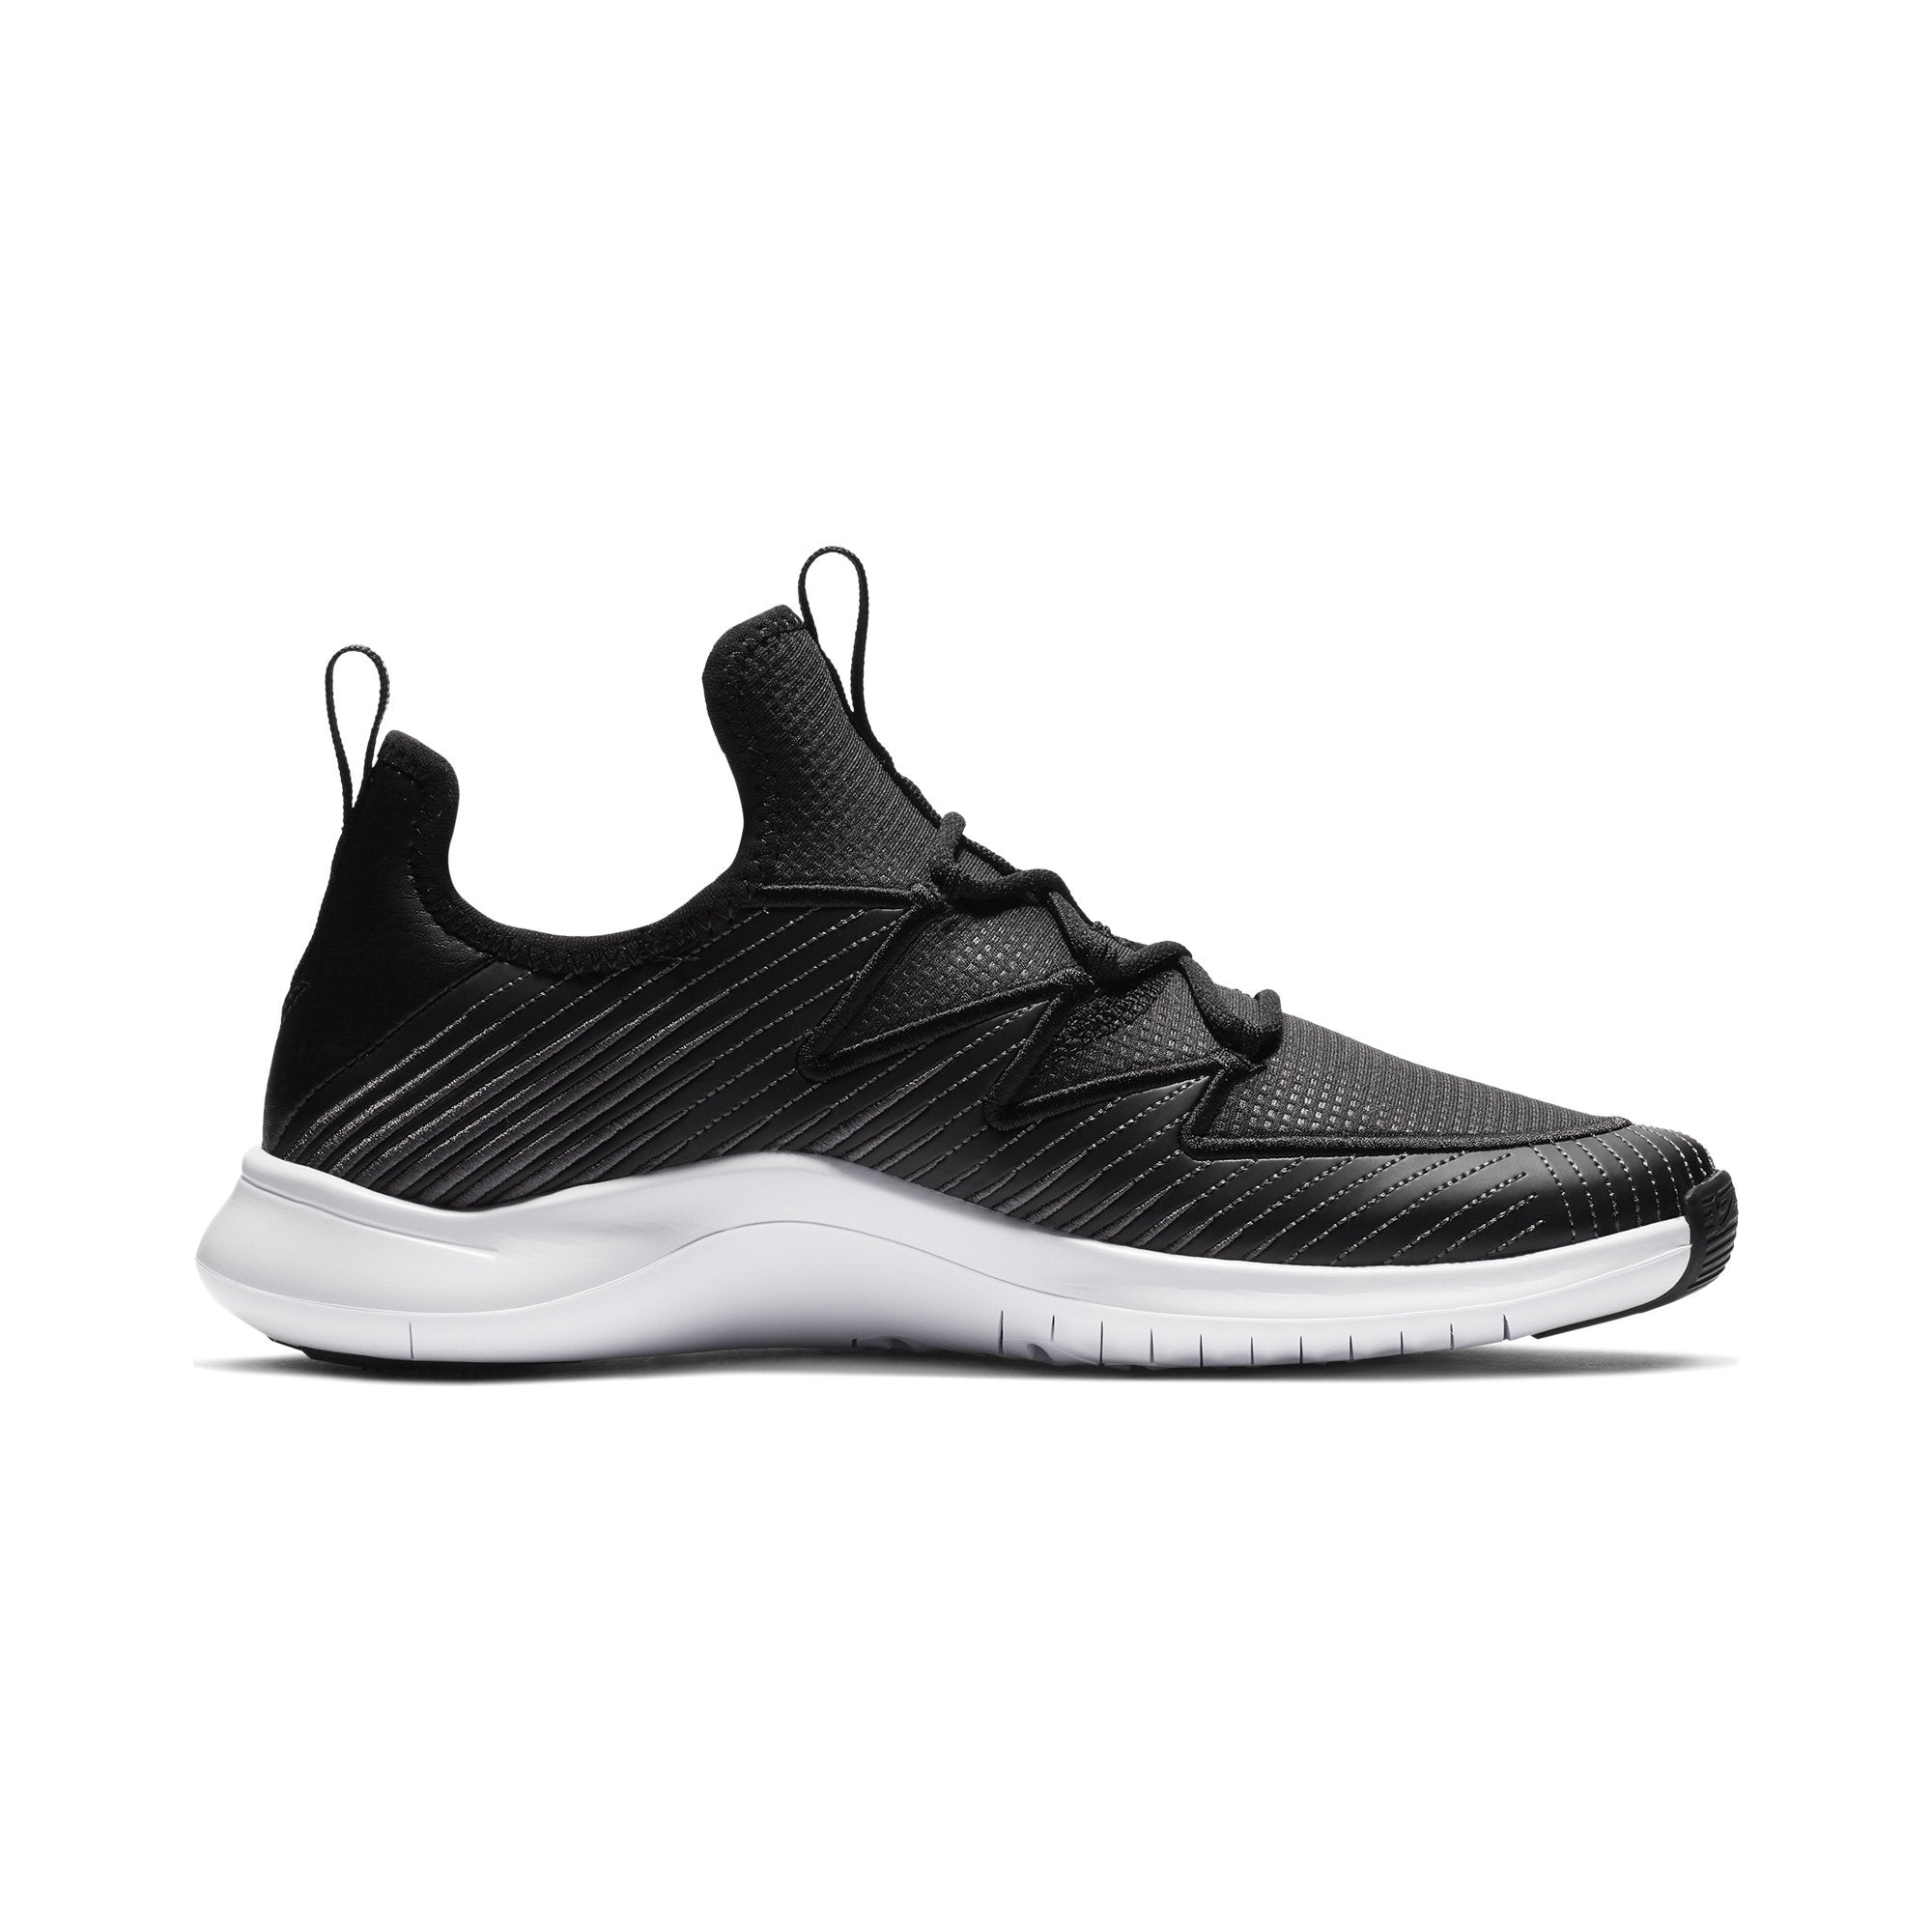 new arrivals 813b2 15f0a Buy Nike Women s Free Ultra Training Shoes, Black White Anthracite Online  in Singapore   Royal Sporting House